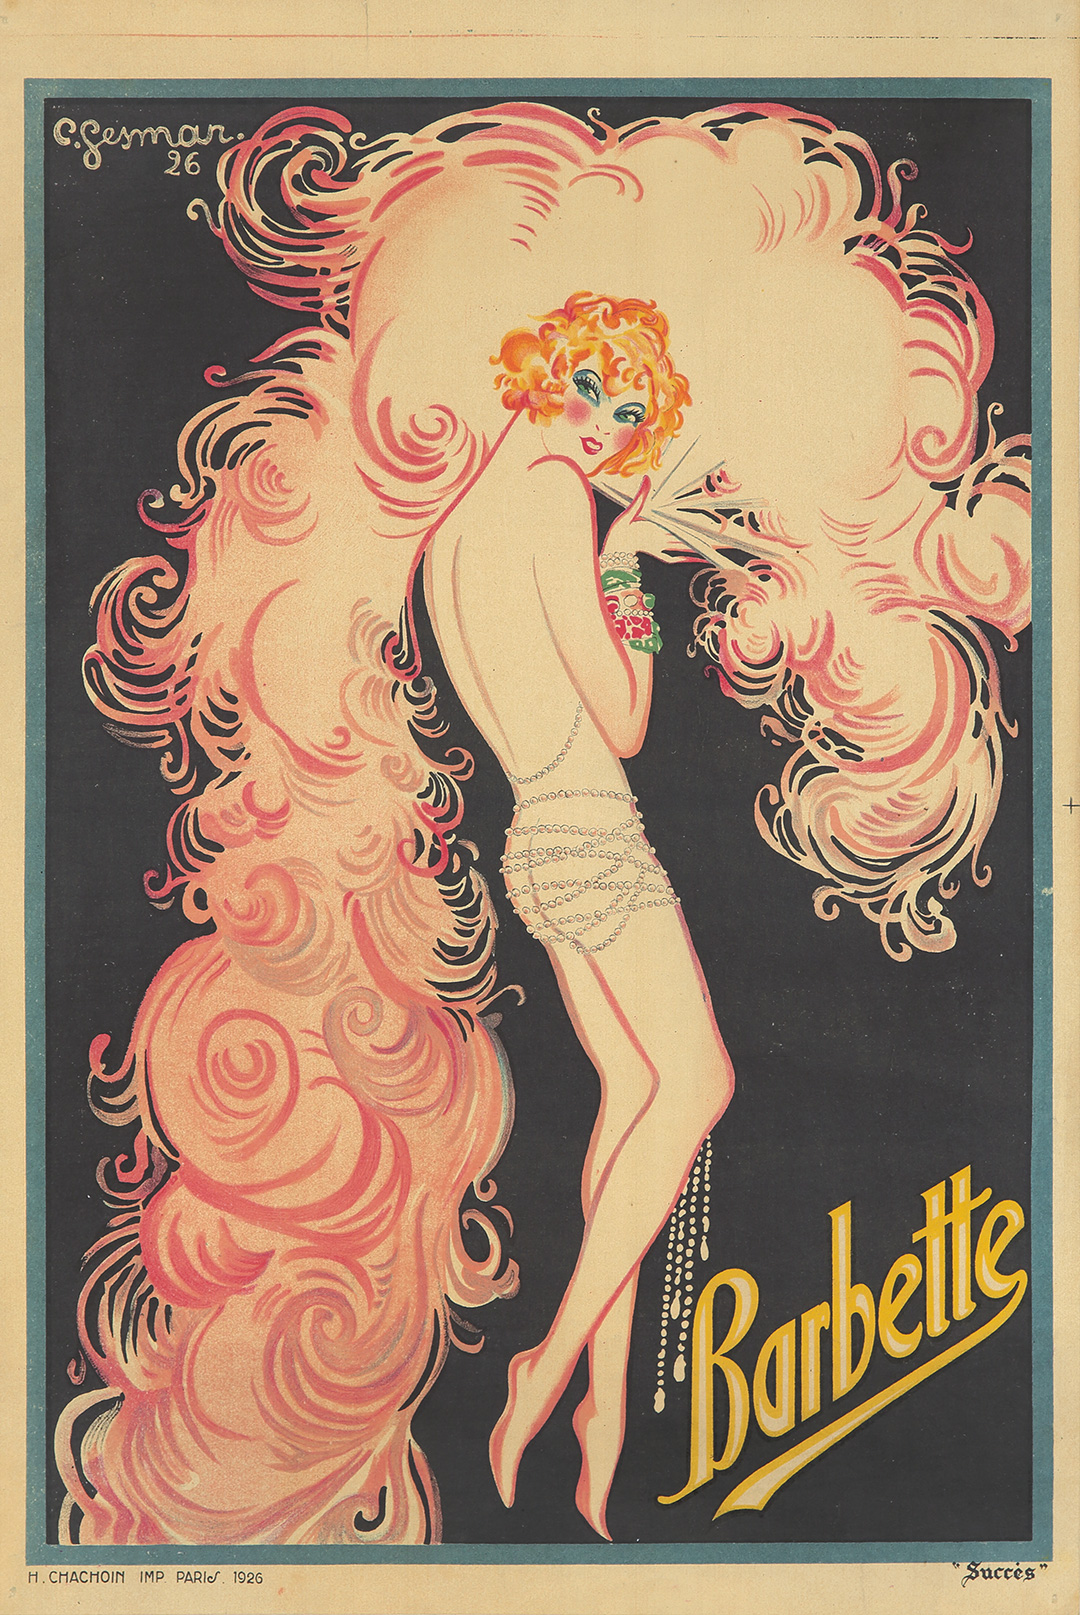 334. Barbette. 1926. (SOLD $5,280)